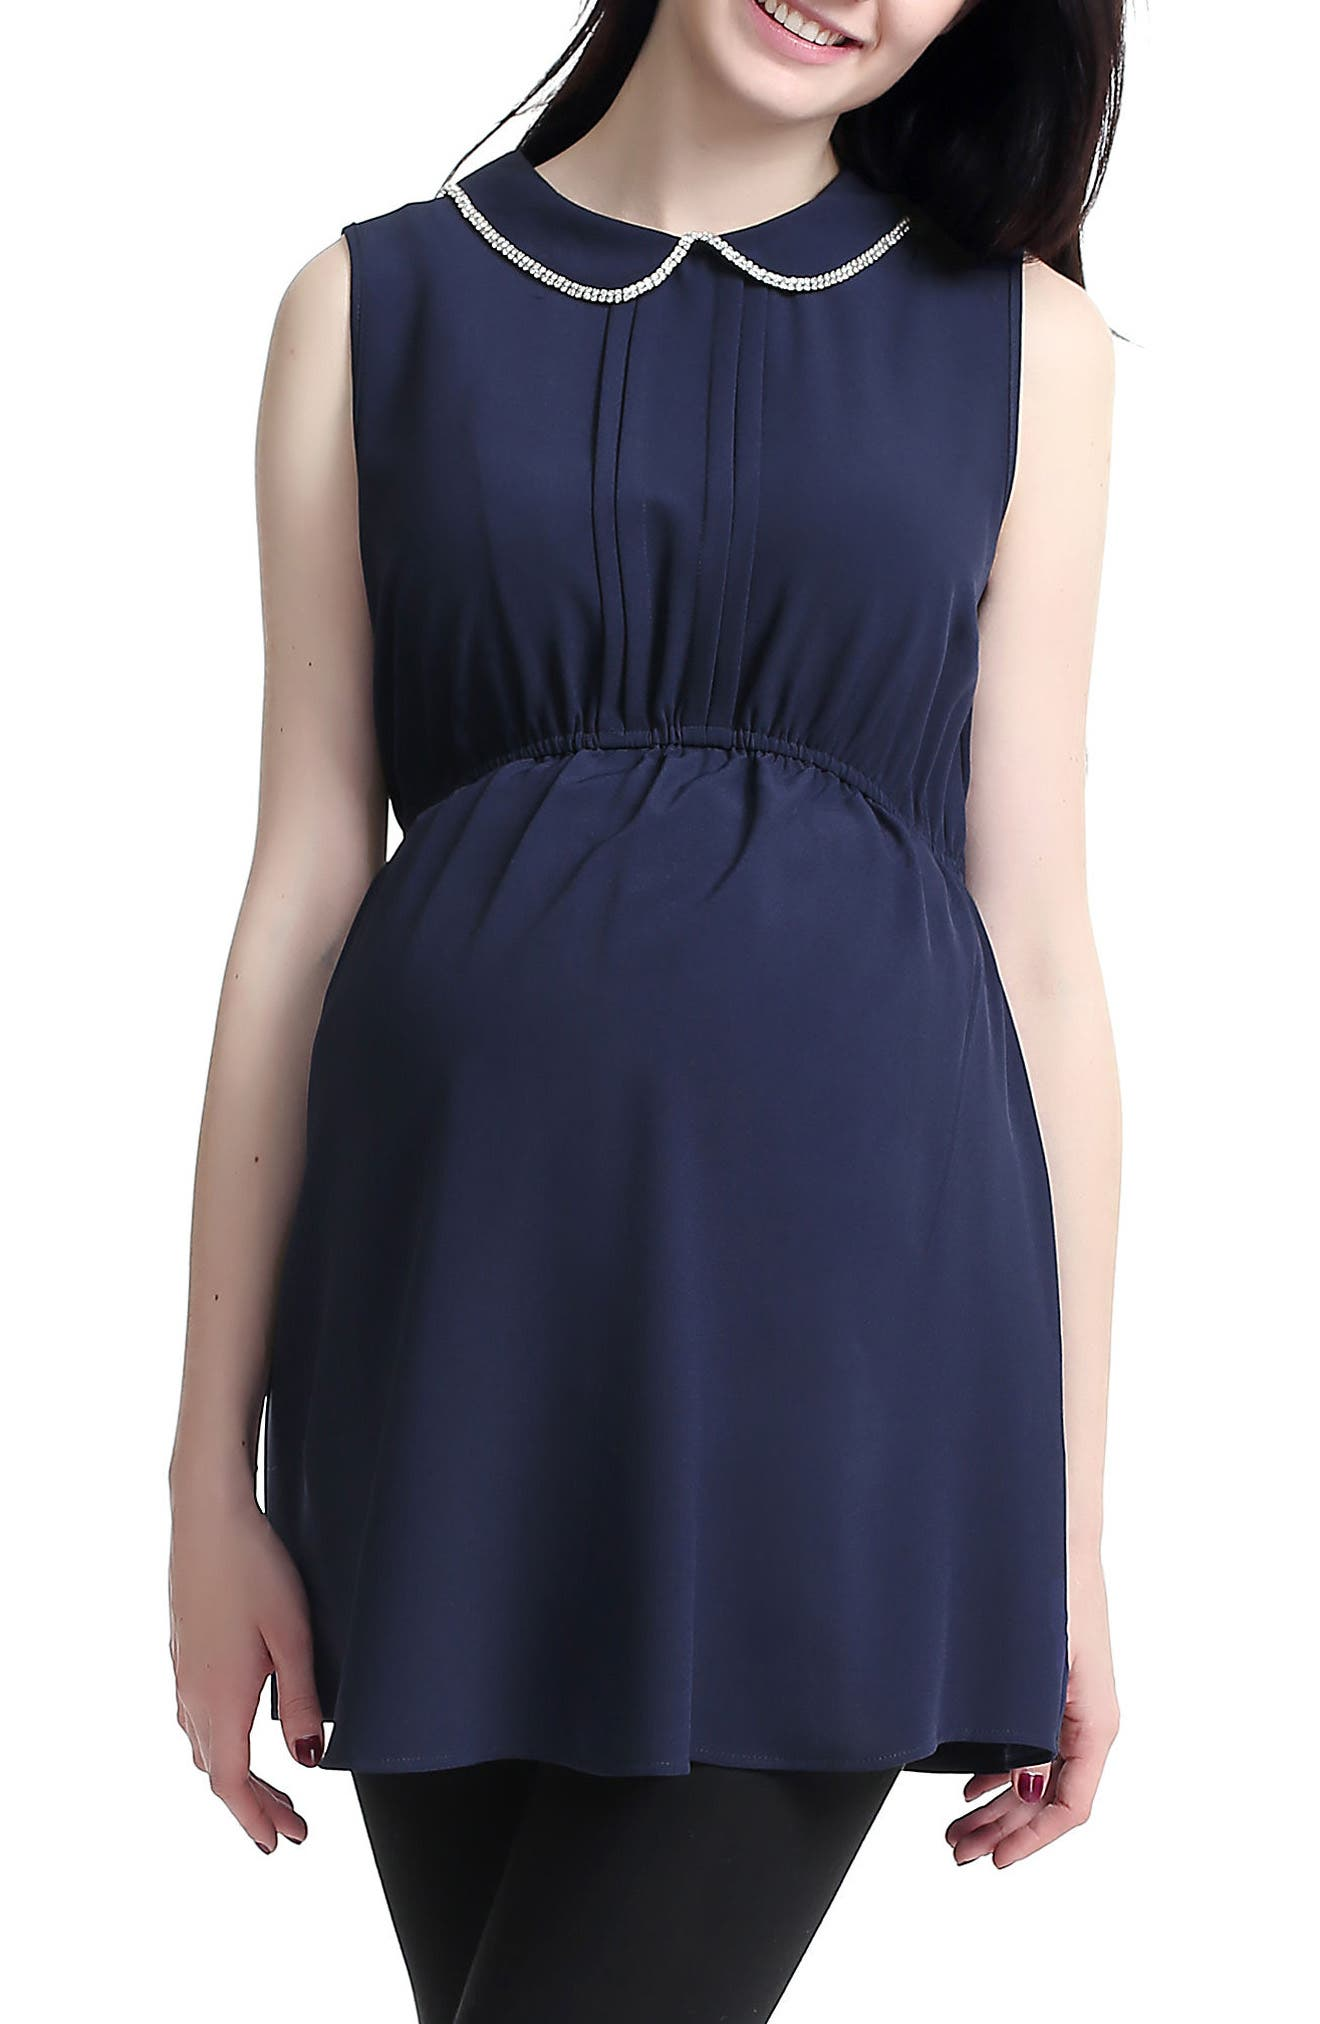 KIMI AND KAI,                             'Callie' Crystal Embellished Peter Pan Collar Sleeveless Maternity Blouse,                             Alternate thumbnail 3, color,                             NAVY